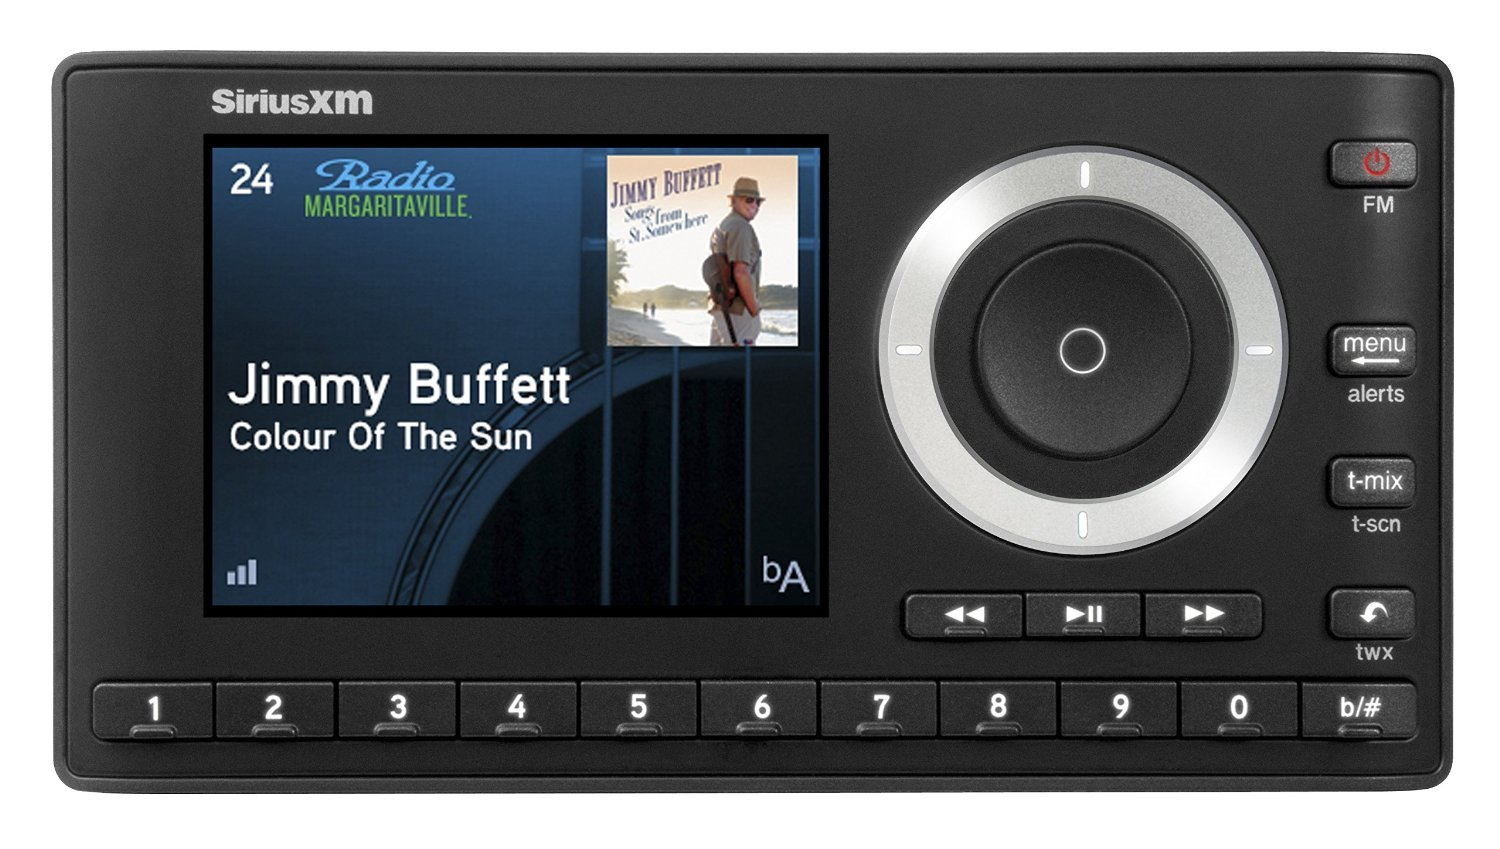 SiriusXM SXPL1V1 Onyx Plus Satellite Radio with Vehicle Kit with Free 3 Months Satellite and Streaming Service by SiriusXM (Image #4)